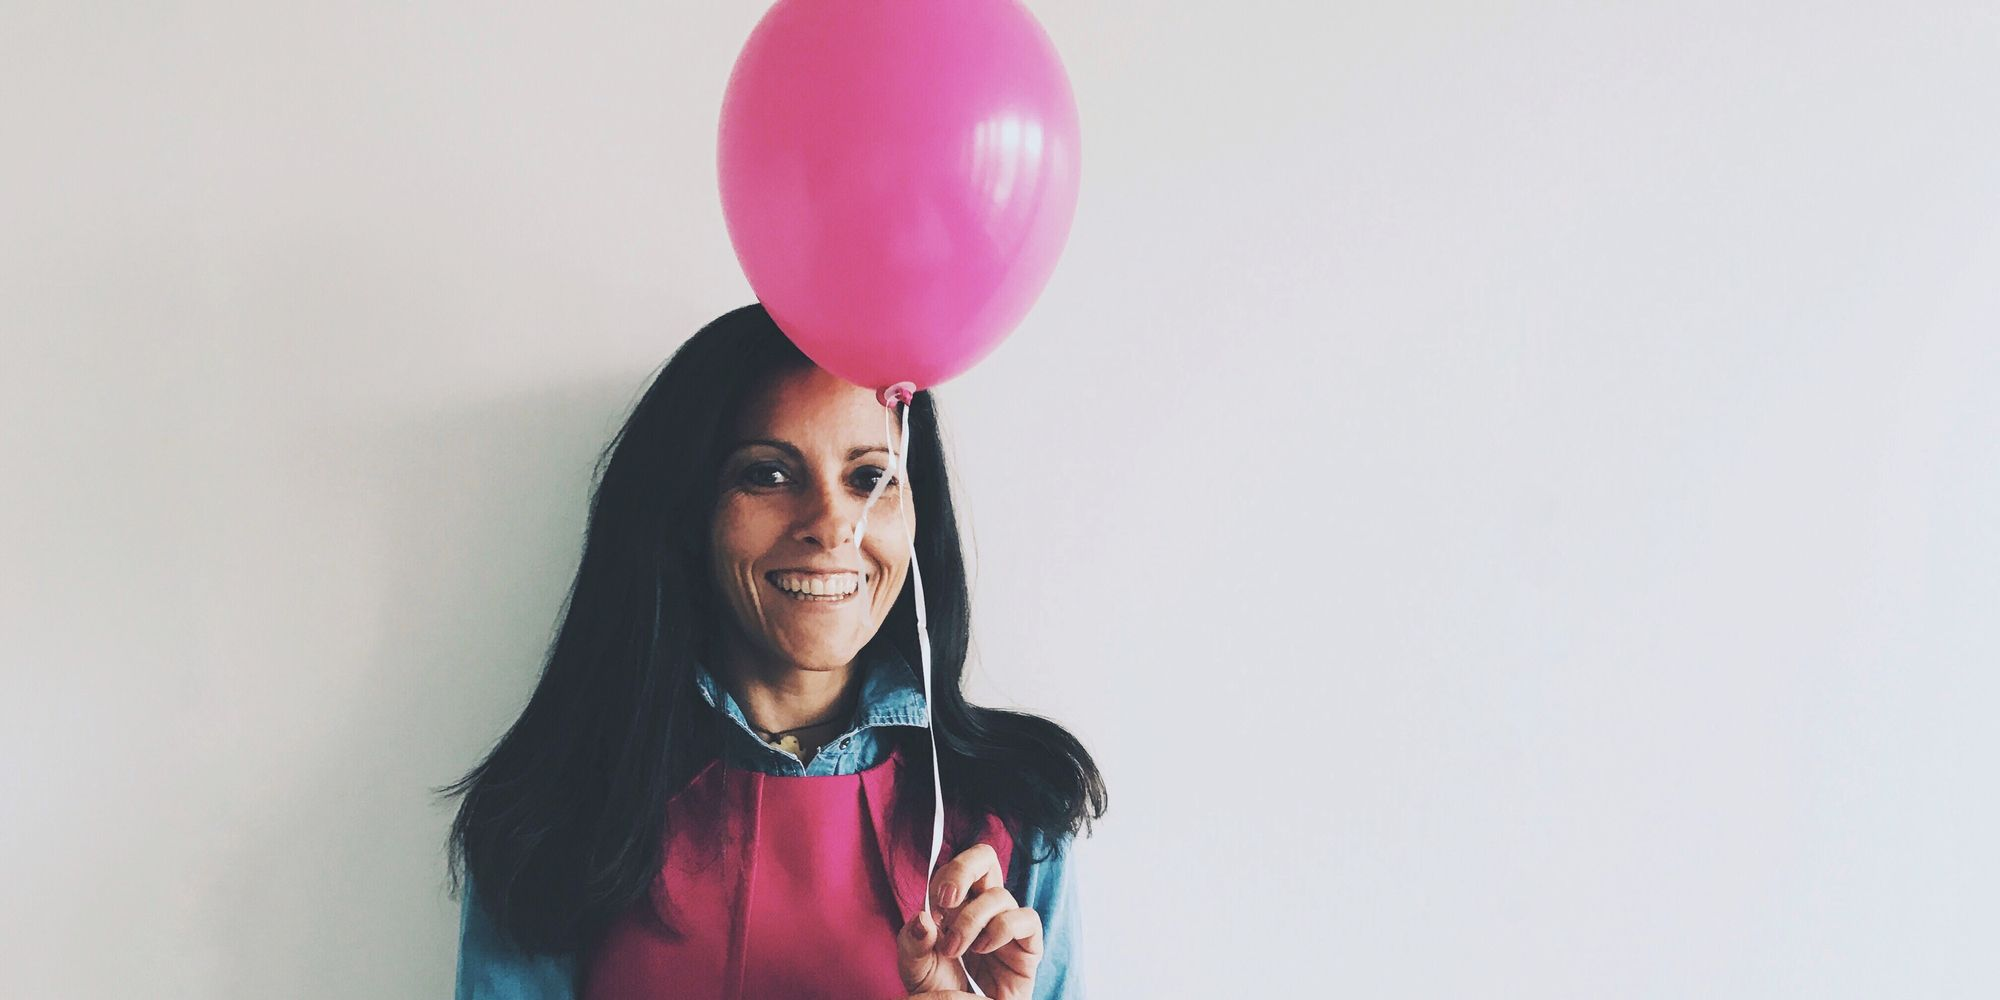 Portrait Of Woman With Pink Balloon Against White Background